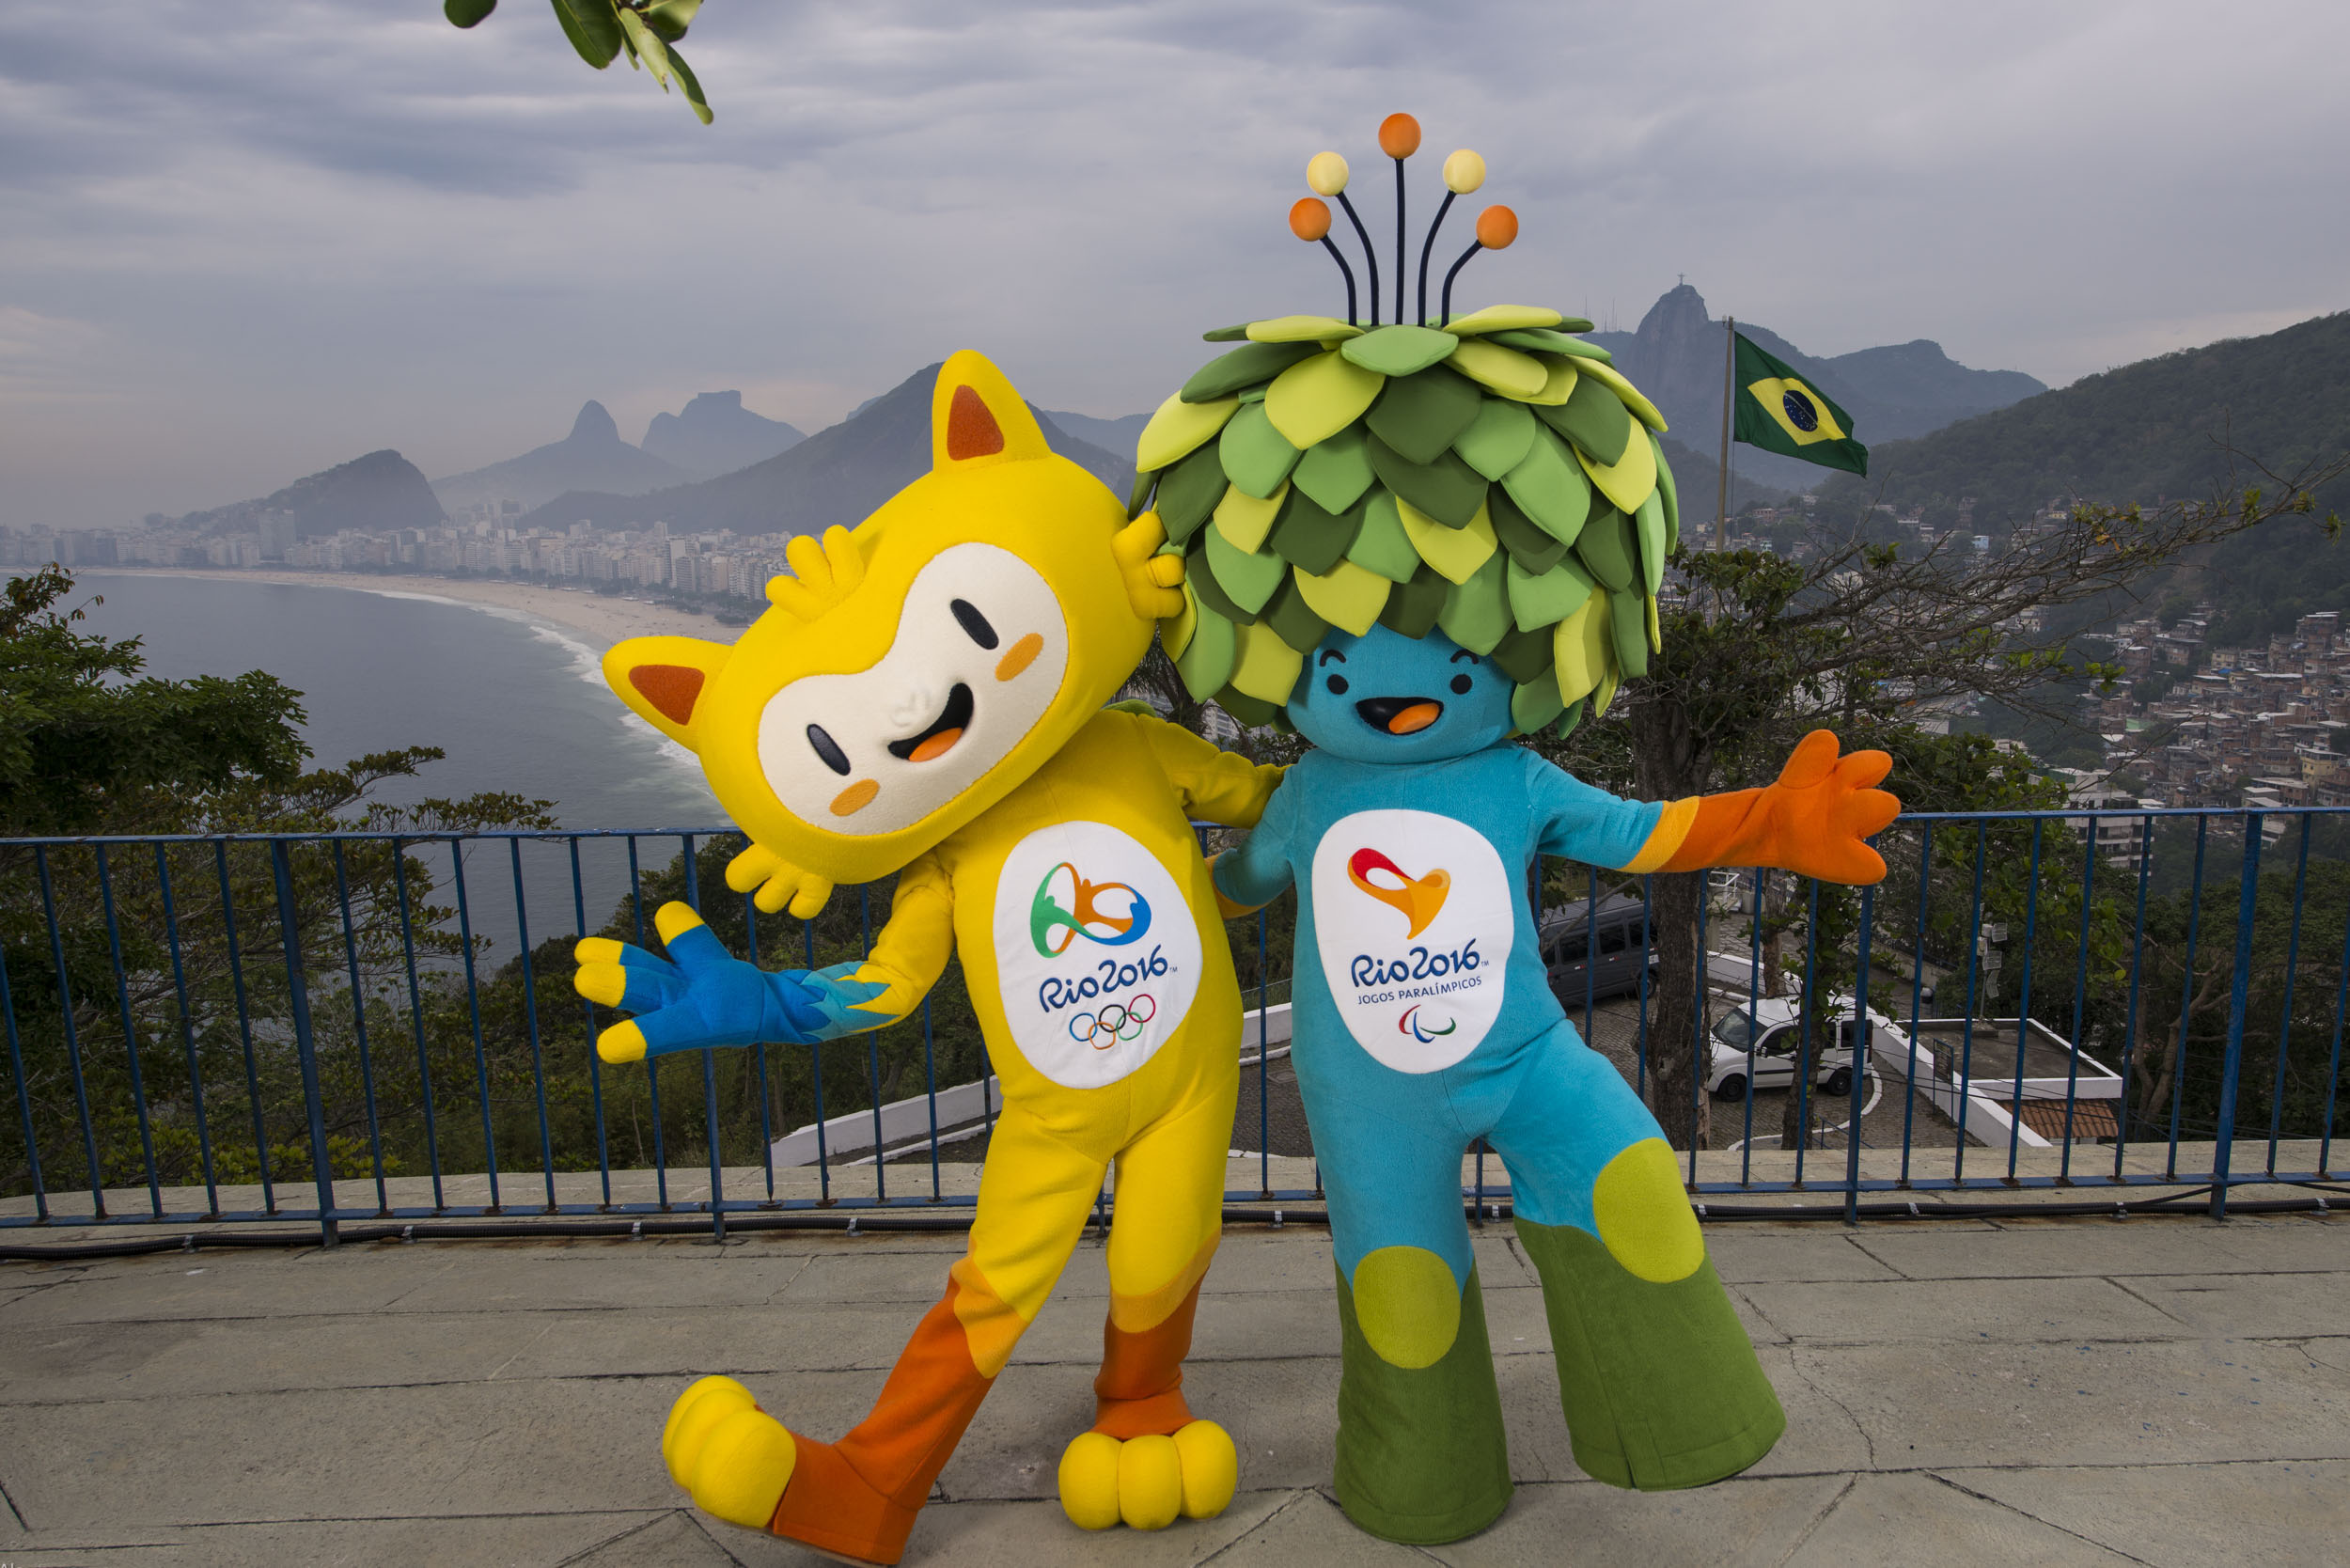 In this photo released by Rio 2016 Organizing Committee for the Olympic and Paralympic Games, the mascots of Rio 2016 Olympic, left, and Paralympic Games pose for a photo at the Leme Fort, with Copabana beach, left, in the background, in Rio de Janeiro, Brazil, Sunday, Nov. 23, 2014. The Mascots are inspired by the Brazilian fauna and flora. (AP Photo/Rio 2016, Alex Ferro)